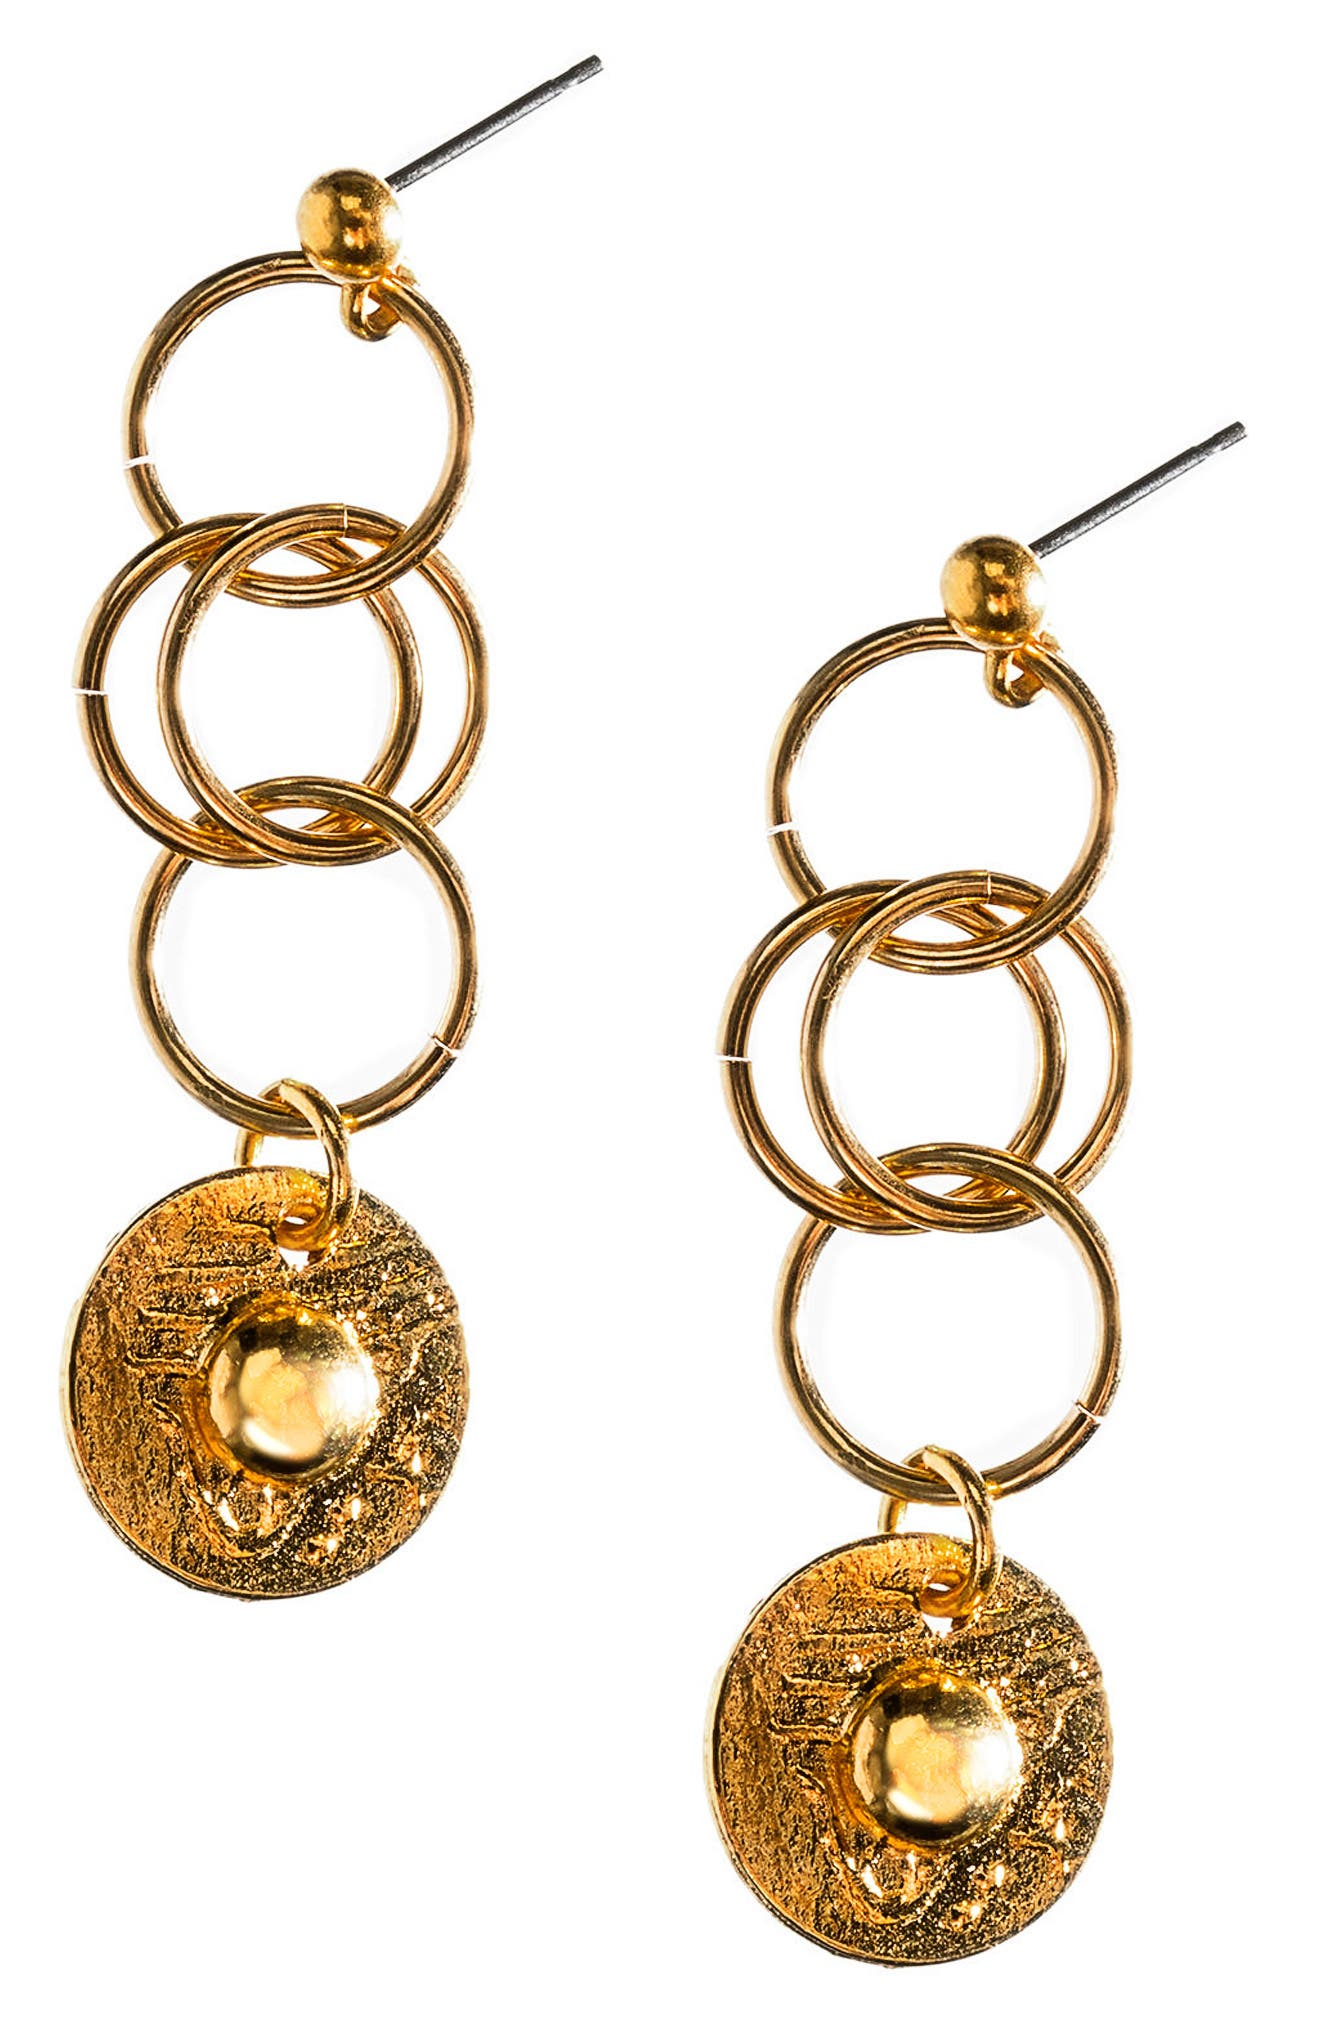 Tri Hoop Coin Earrings,                         Main,                         color, Gold